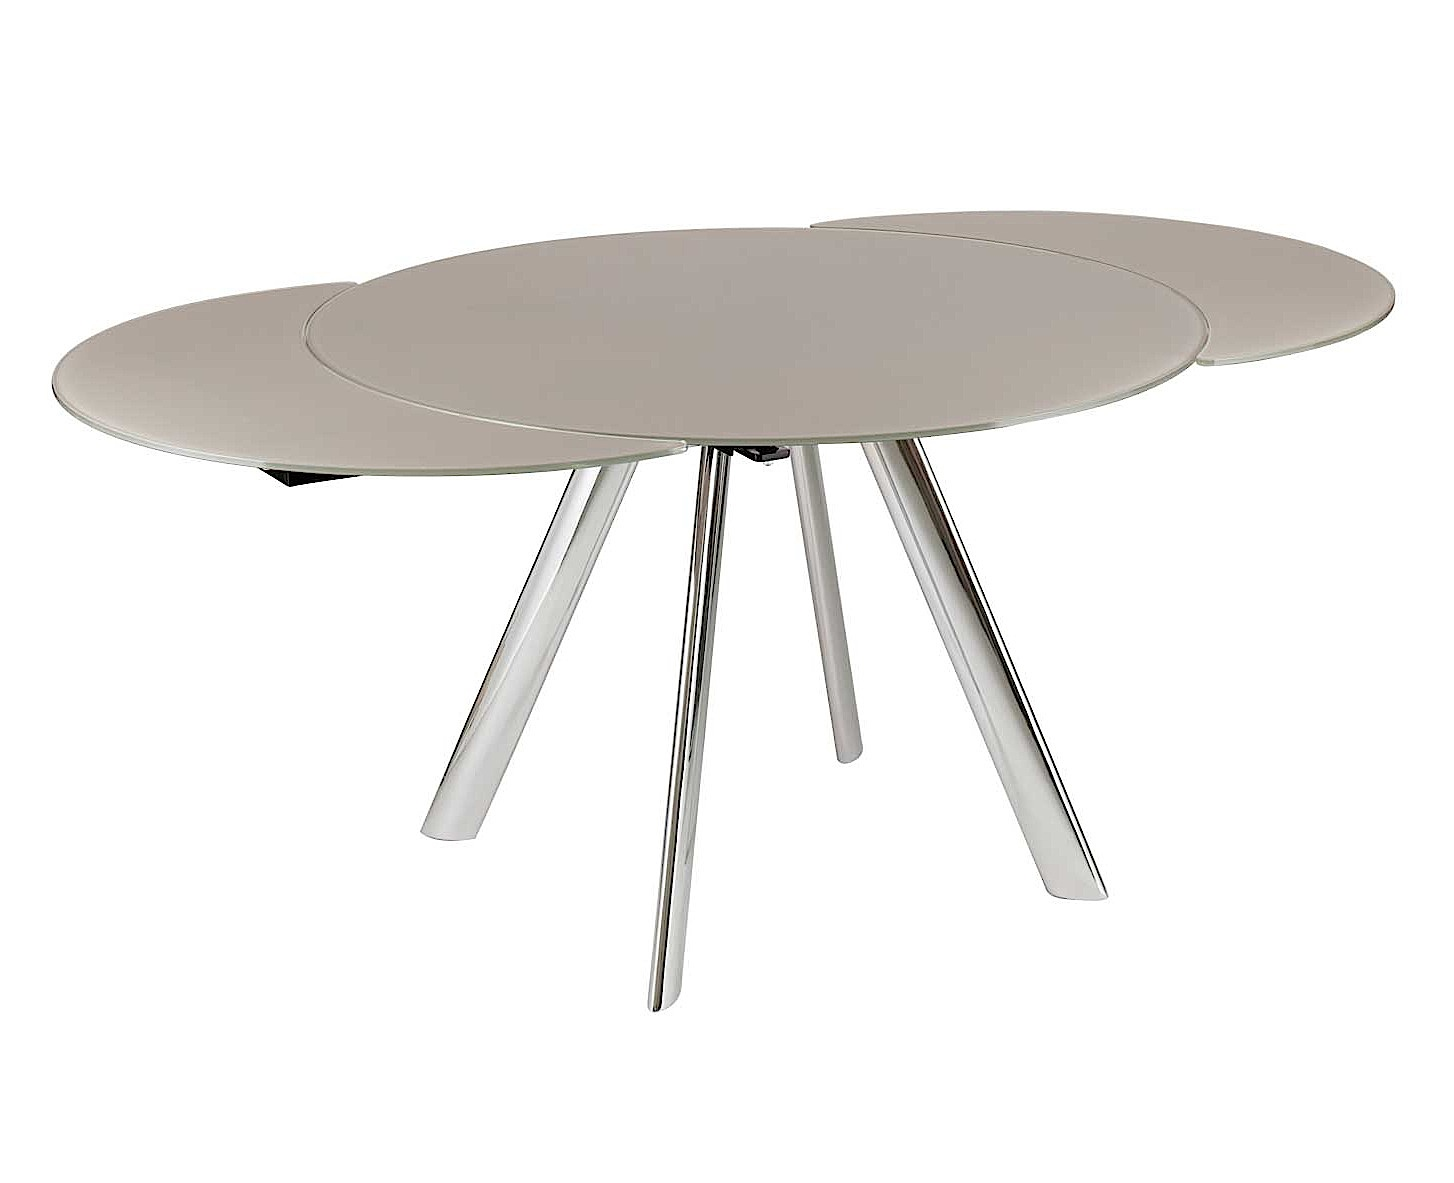 Elan Metallo Round Extending Dining Table-33126